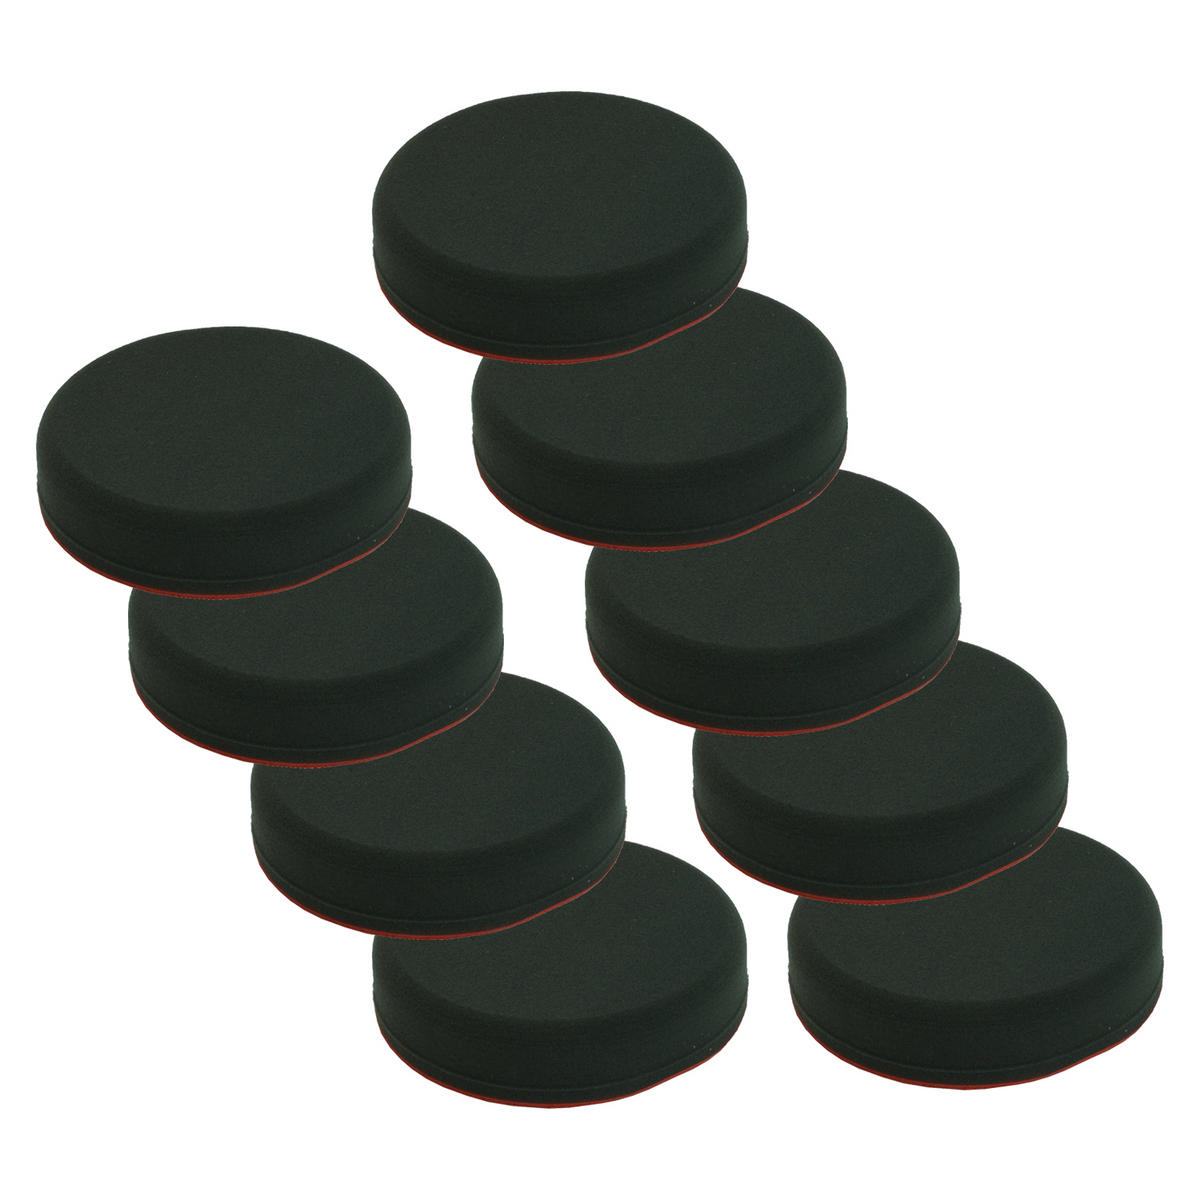 Car Cleaning 130mm Soft Black Velcro Polishing Cutting Detailing Mop Head x 9